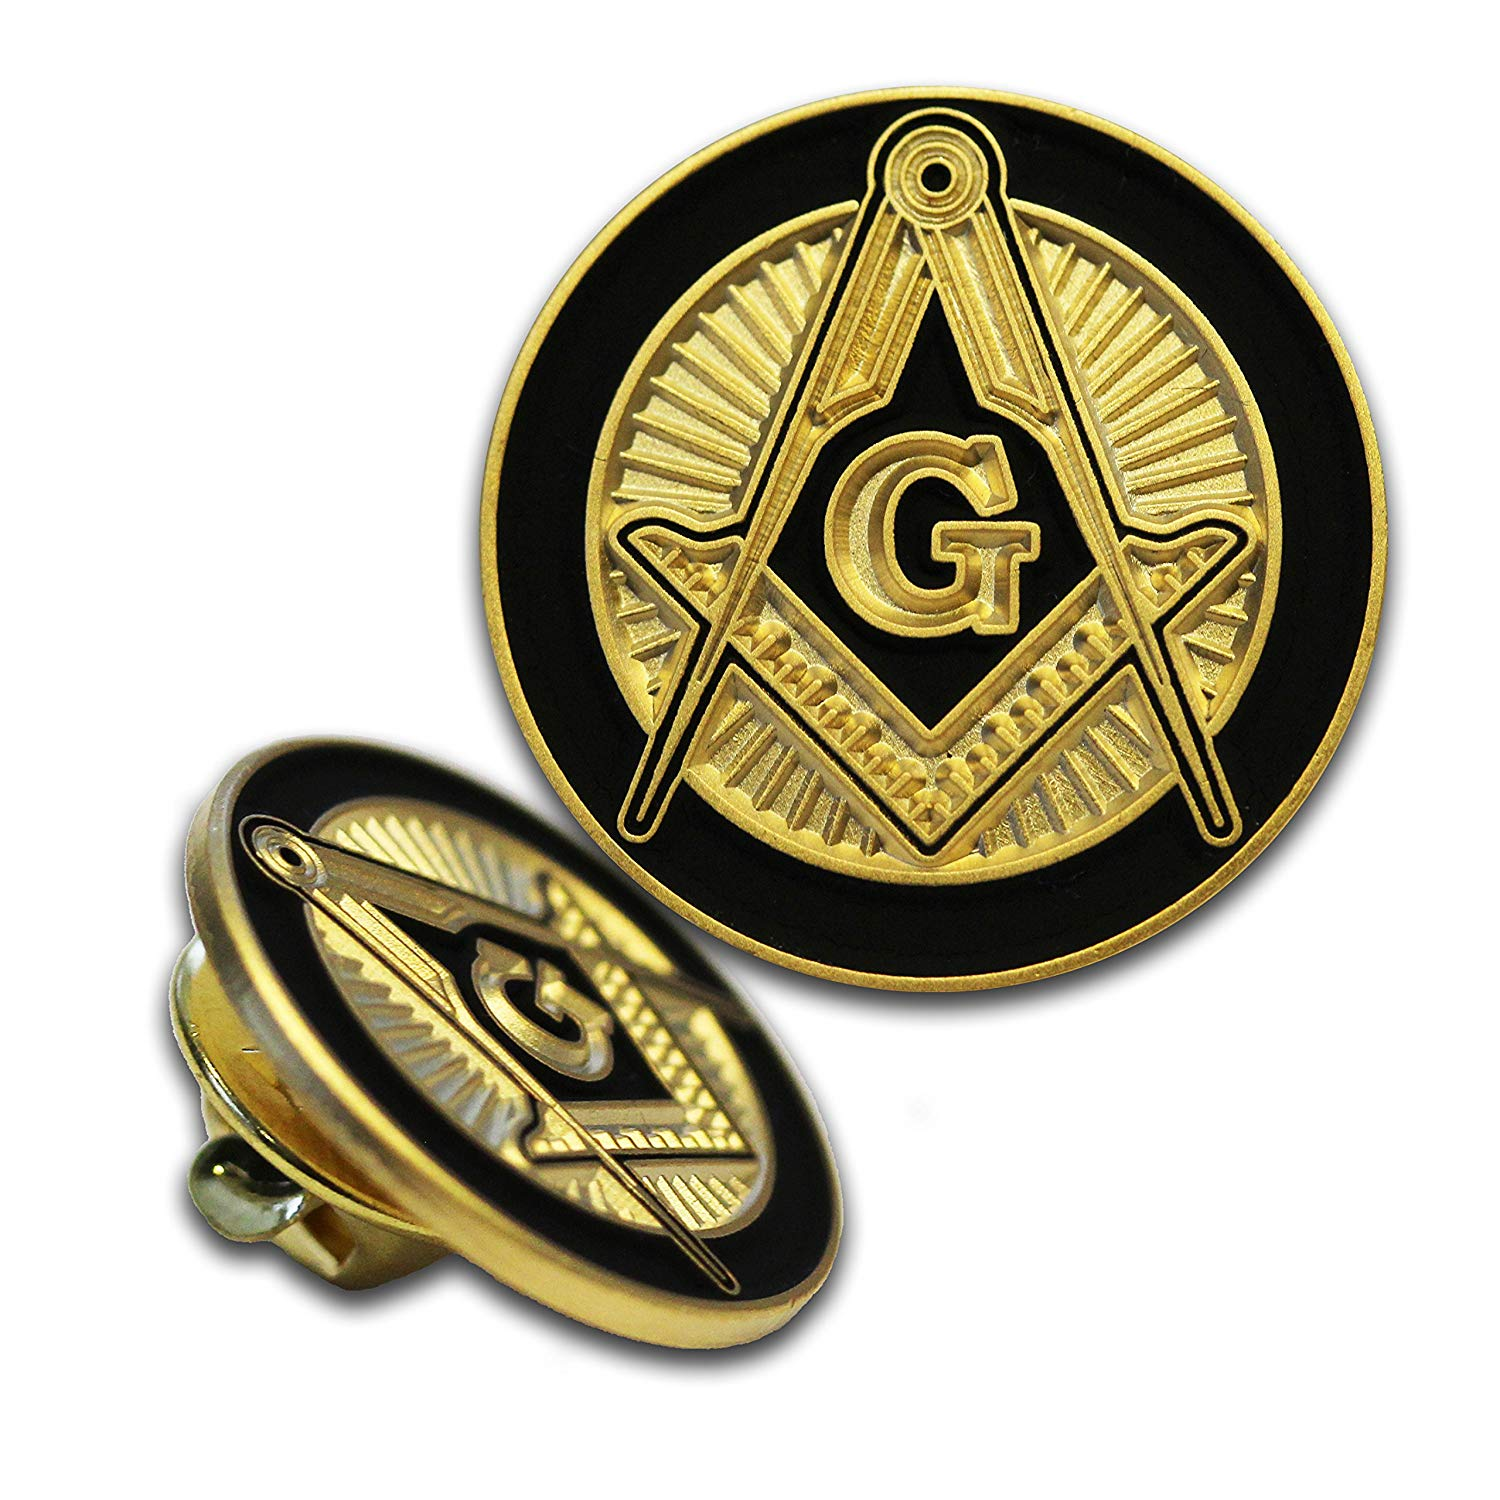 a2e2838241dd Get Quotations · Freemason Lapel Pin Freemason Lapel Pin. 7.79. The Square  and Compasses is the most recognizable symbol in Freemasonry ...